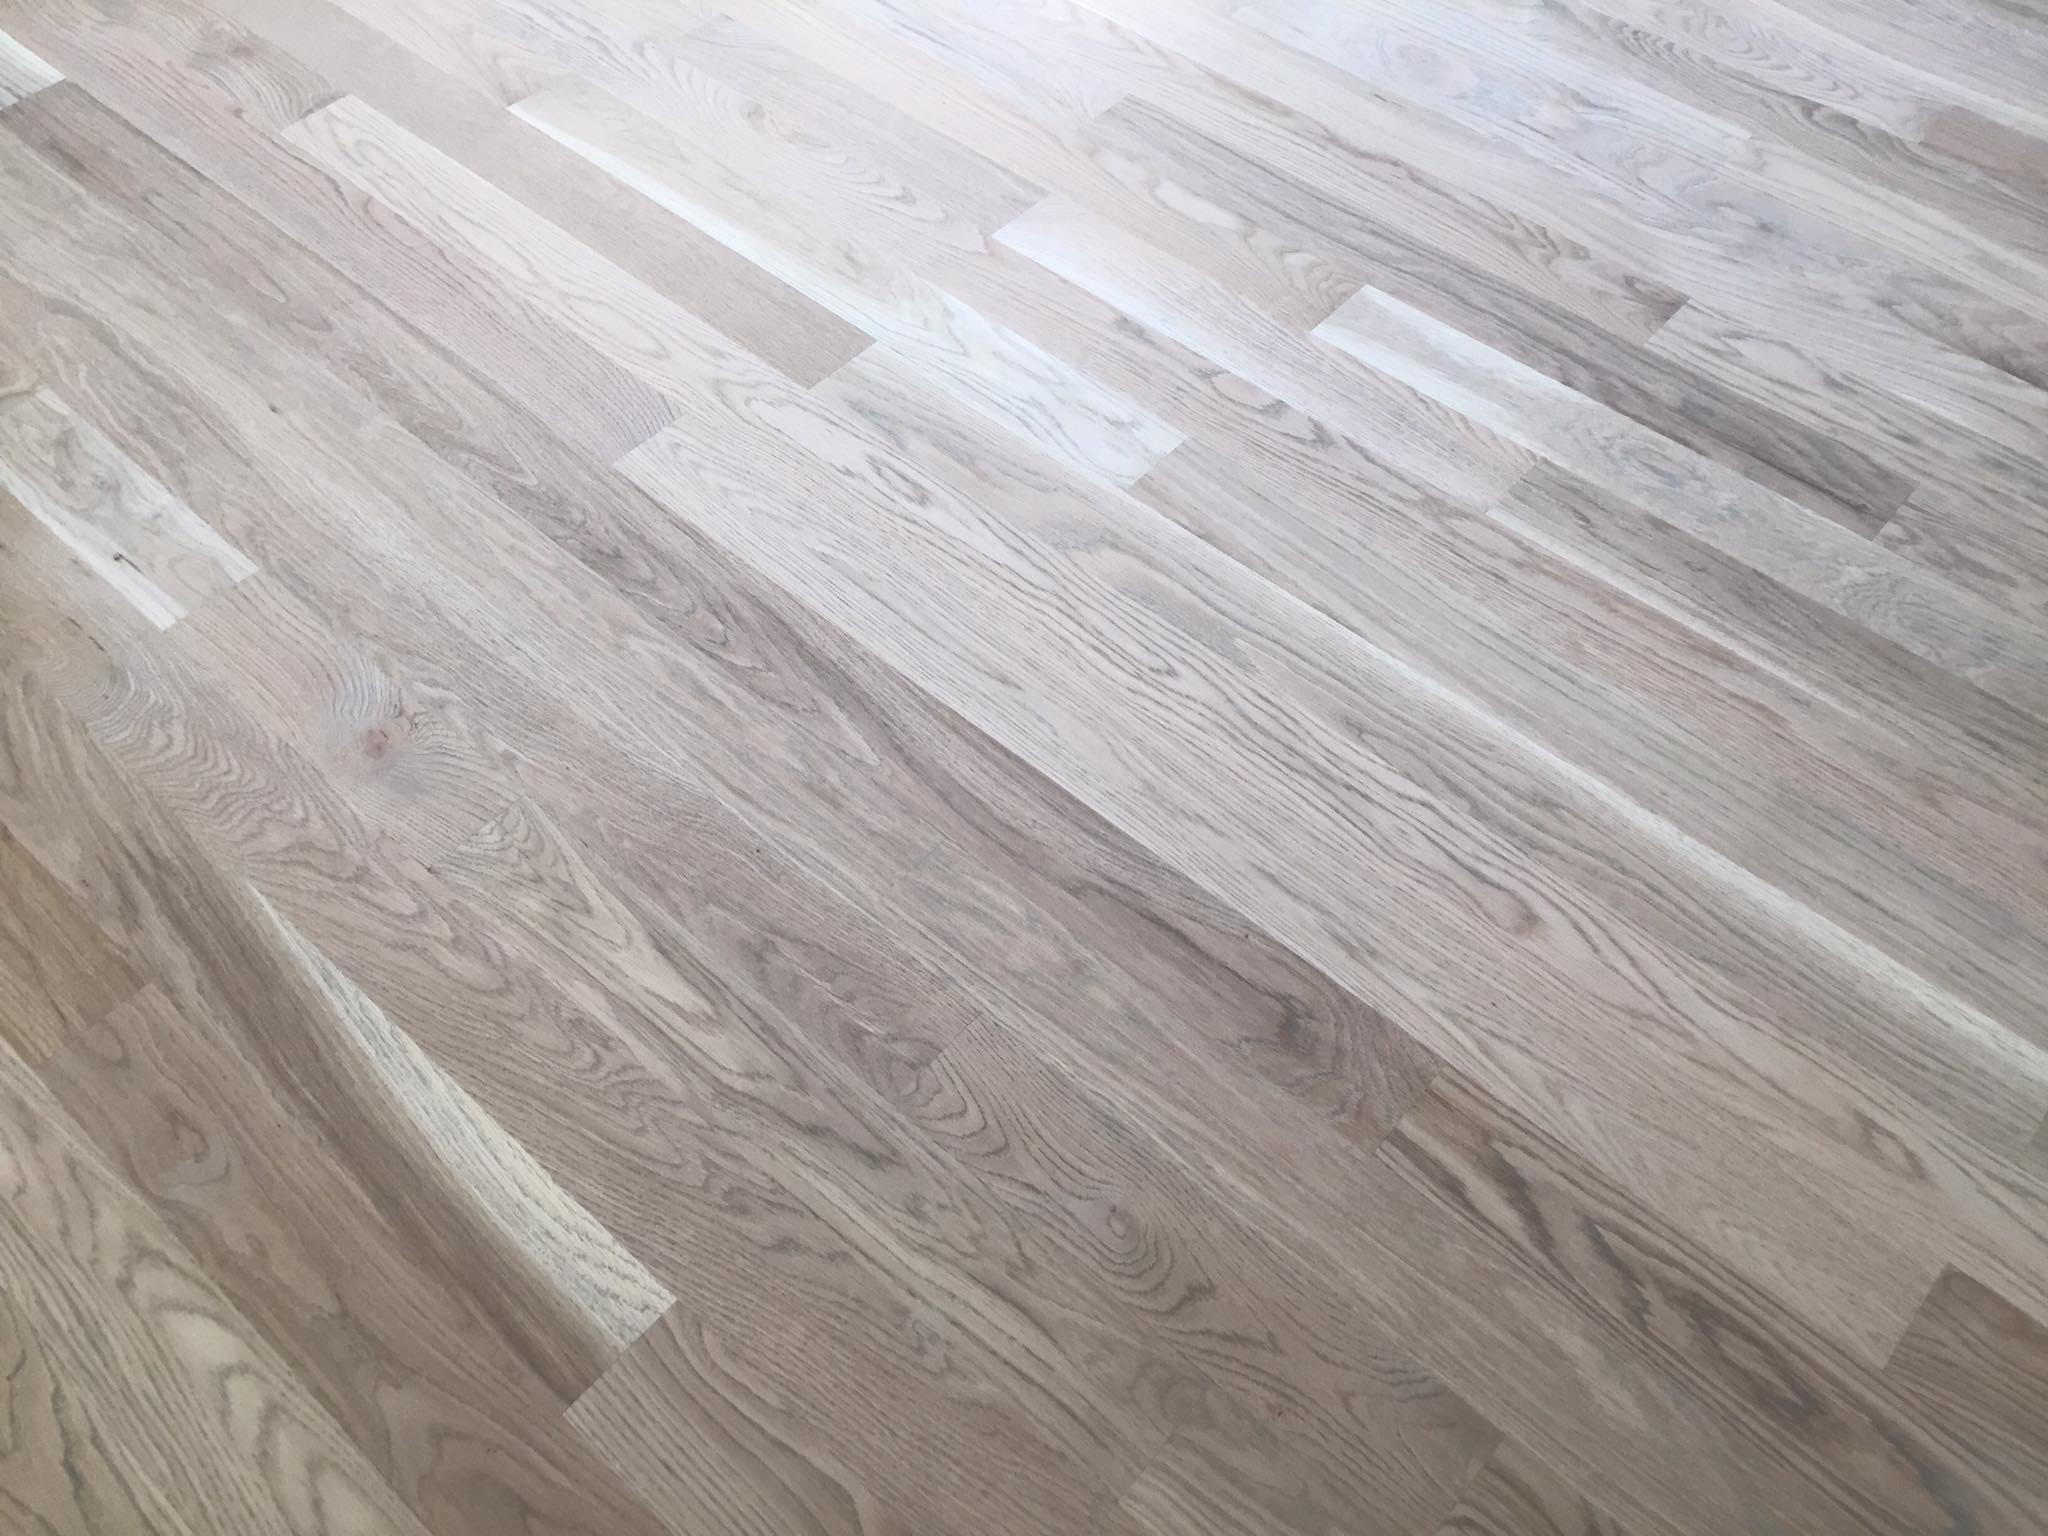 Solid white oak 3 1 4 hardwood floor installation chicago for Solid oak wood flooring